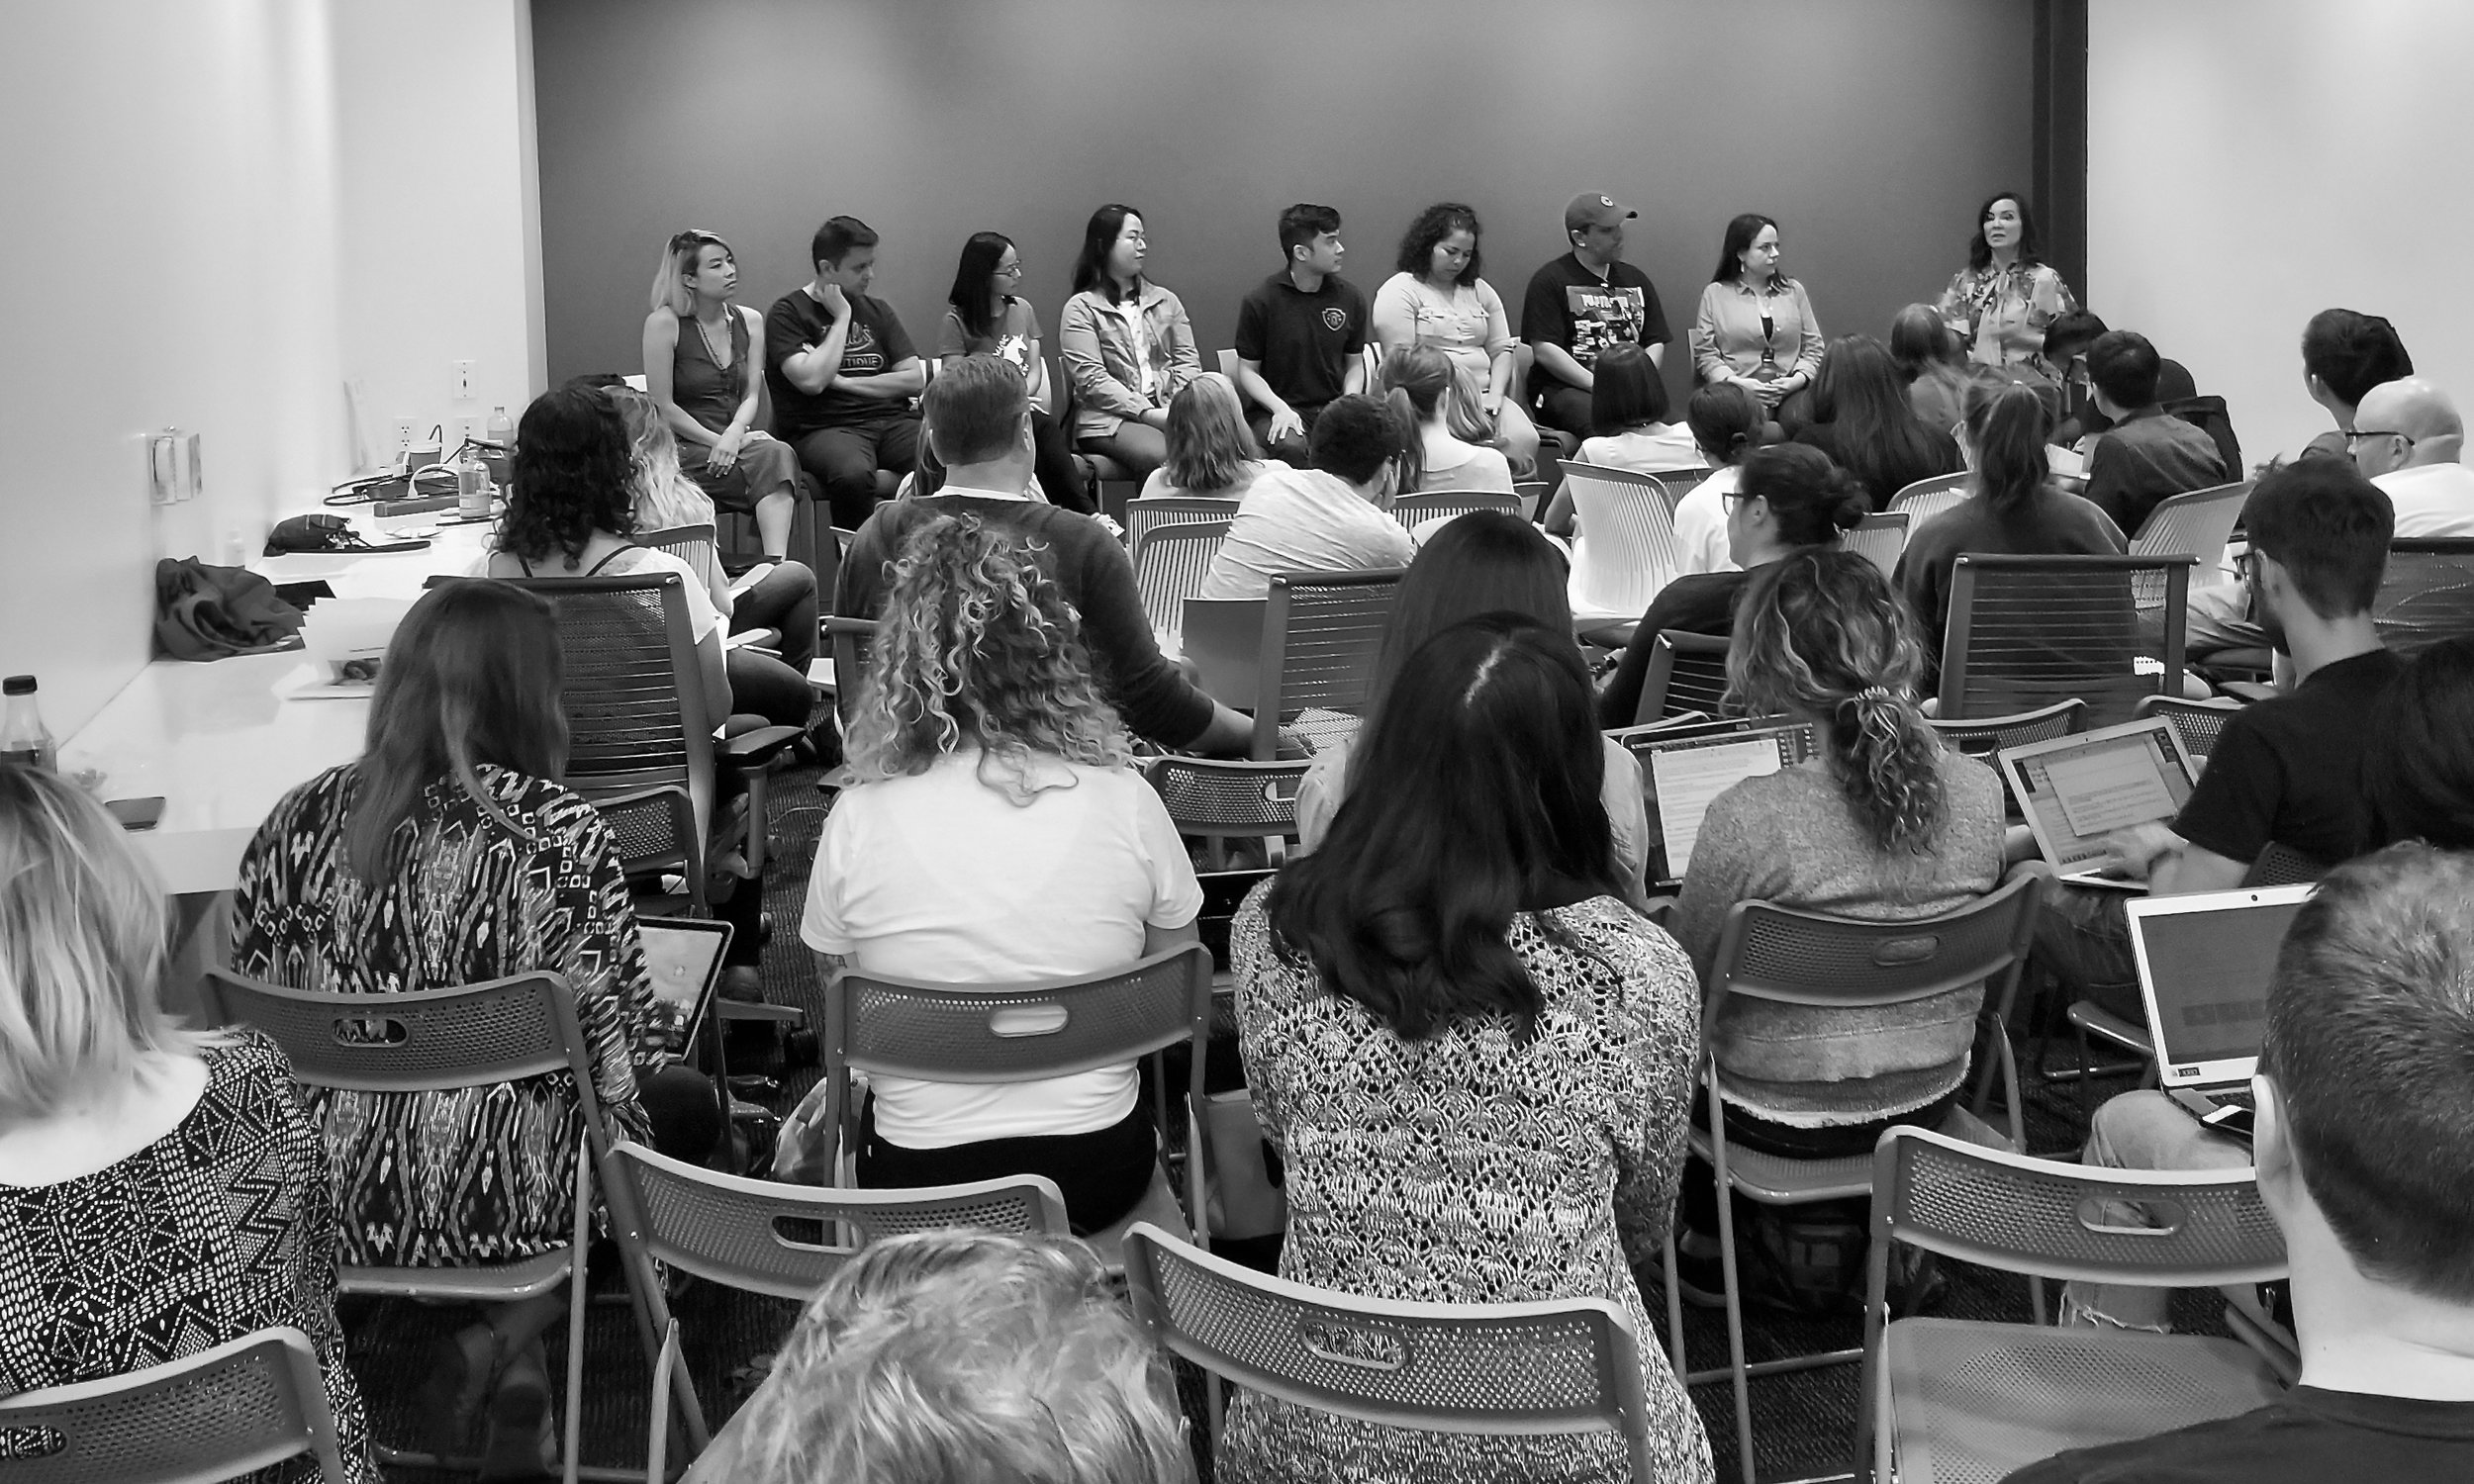 A full house at the Fellowship Bio & Essay Panel at Blank Spaces in Larchmont, Los Angeles, 2019.